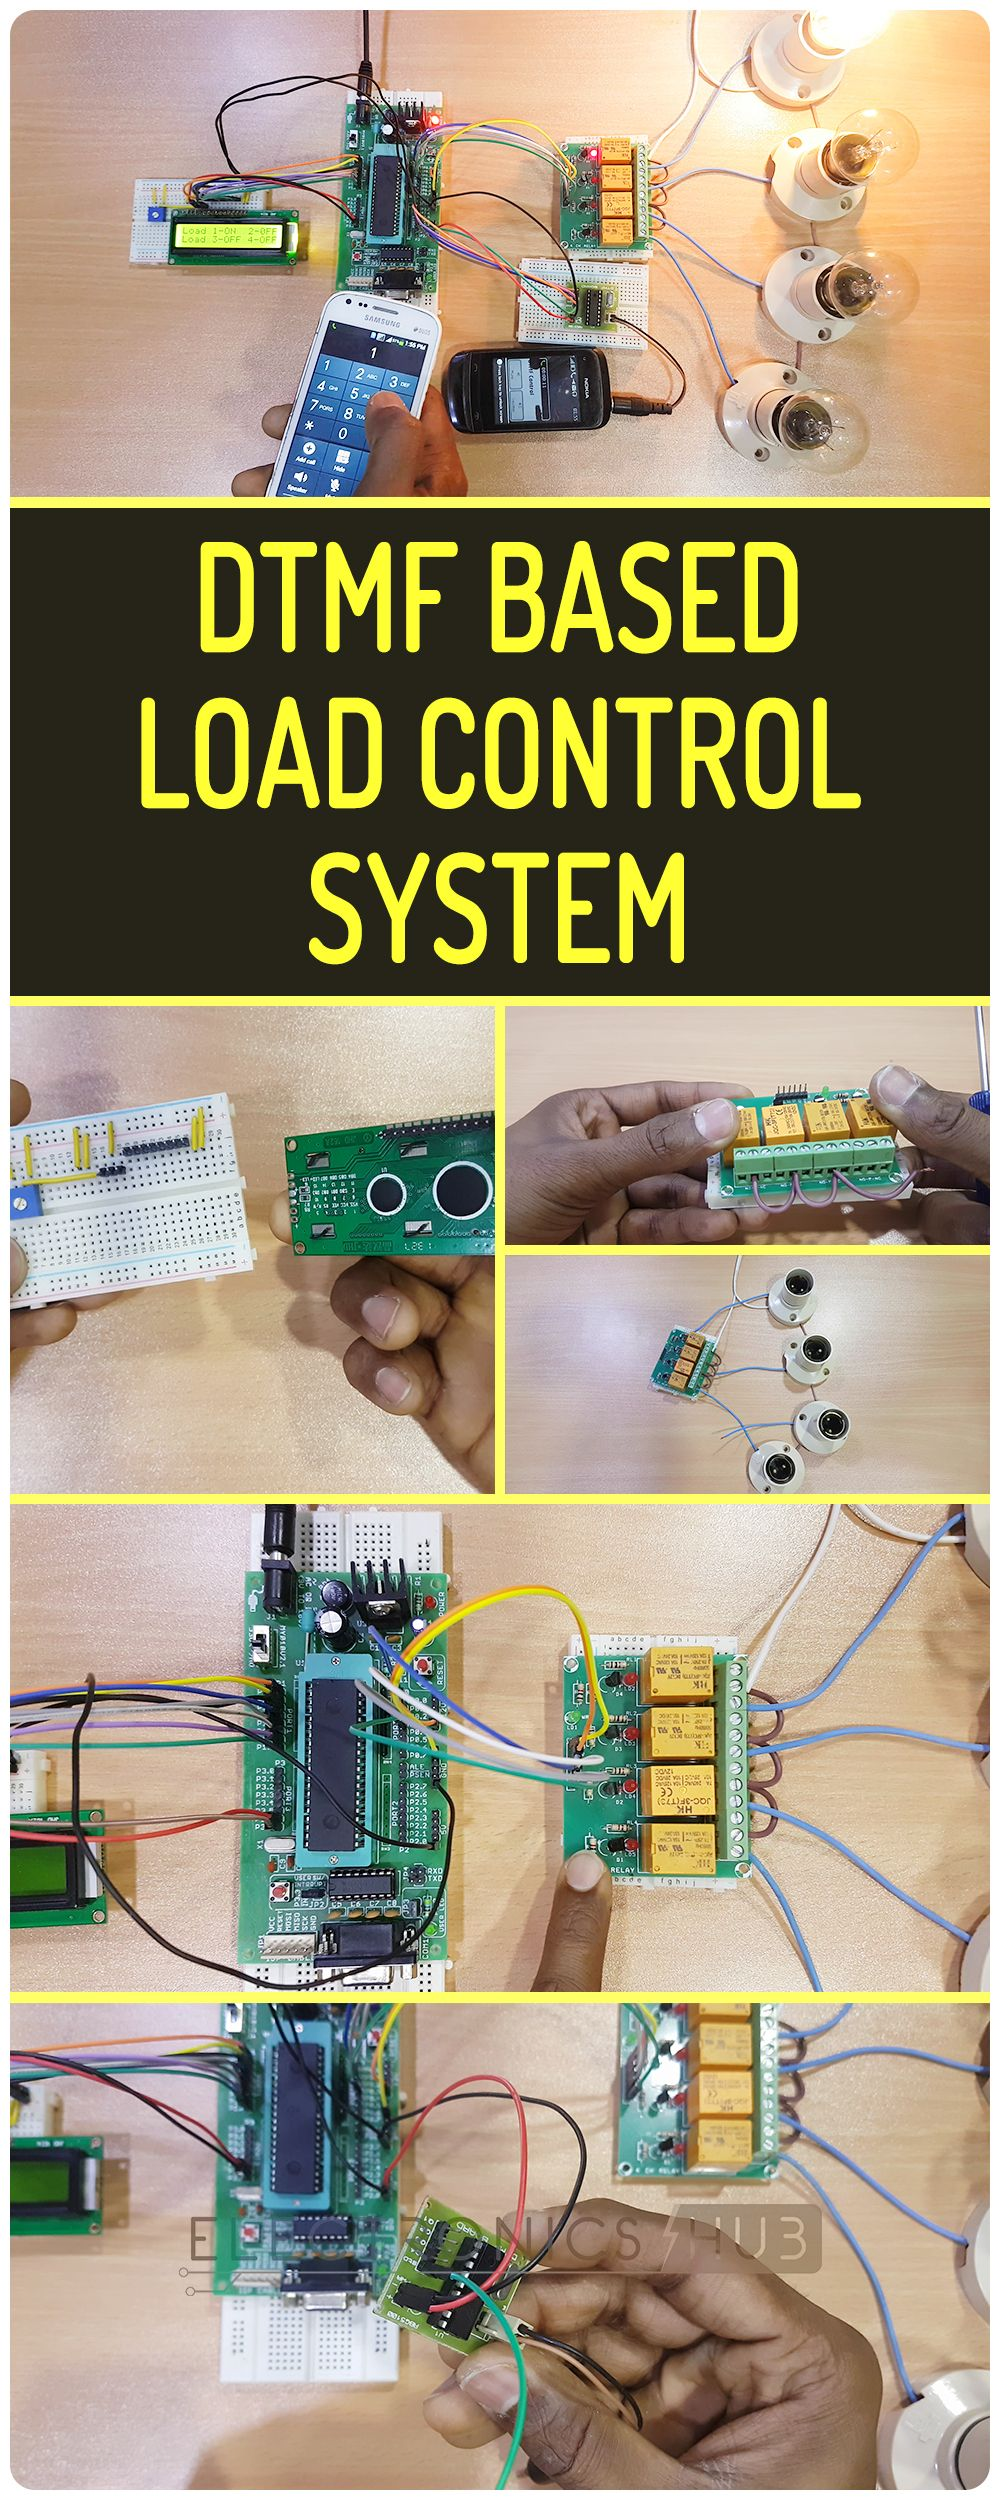 Dtmf Based Load Control System Using 8051 Microcontroller Electronics Project Circuit Diagram Pinterest Arduino And